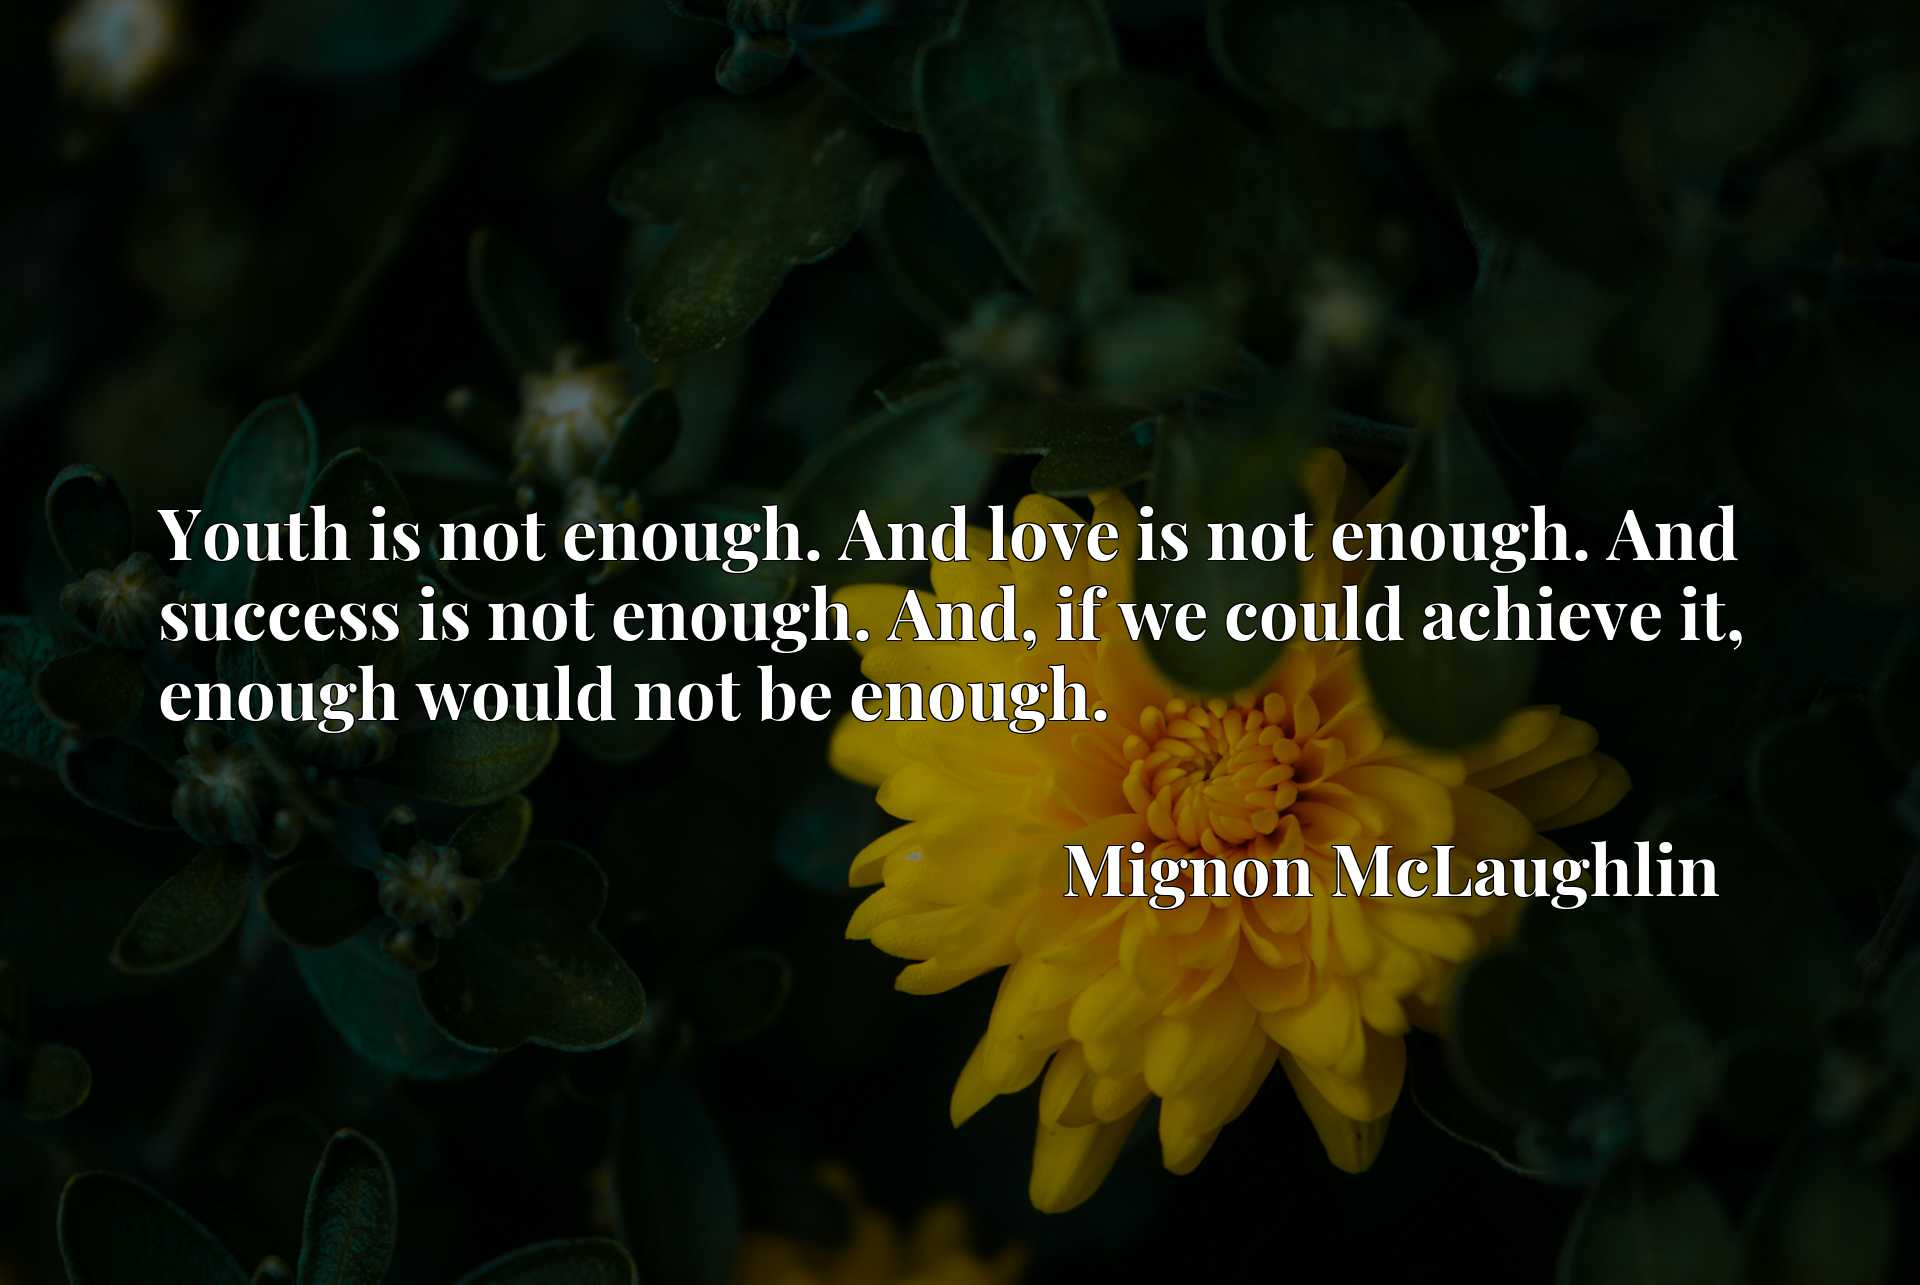 Youth is not enough. And love is not enough. And success is not enough. And, if we could achieve it, enough would not be enough.